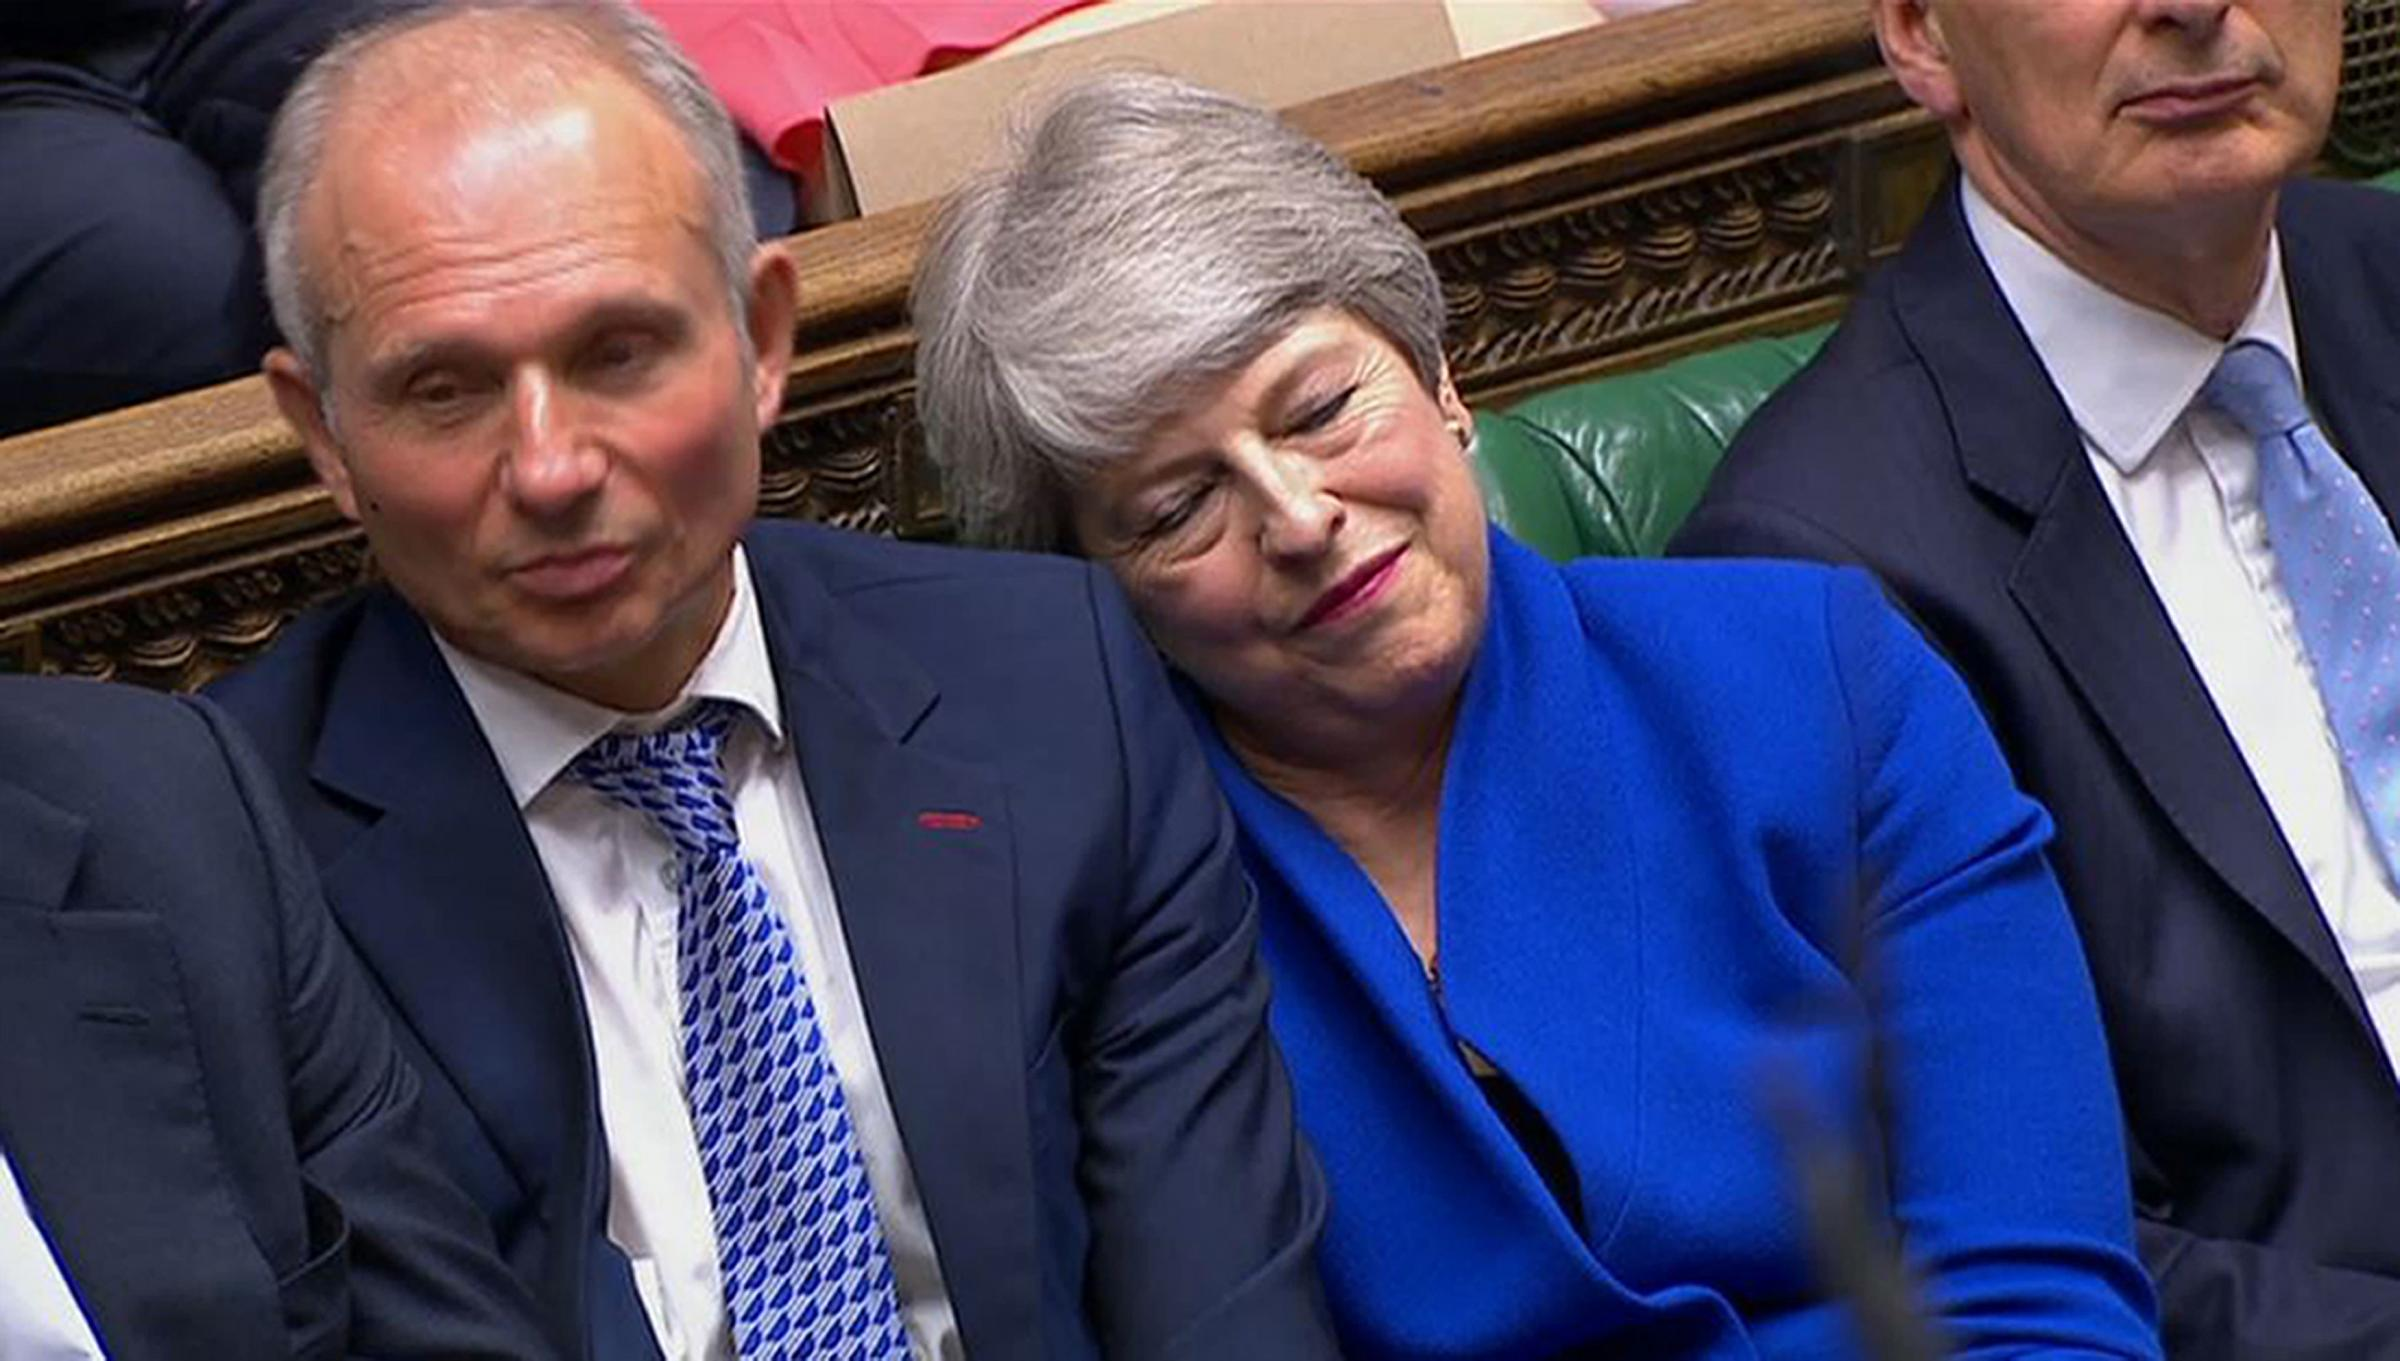 Theresa May accused of 'worst kind of cronyism' after honours showered on her former No 10 staff